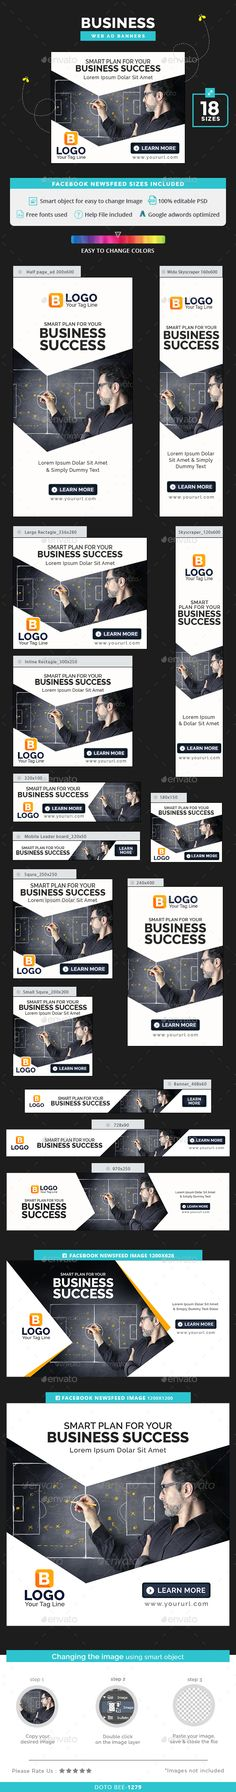 Business Banners — Photoshop PSD #banner pack #studio • Available here → https://graphicriver.net/item/business-banners/16360243?ref=pxcr